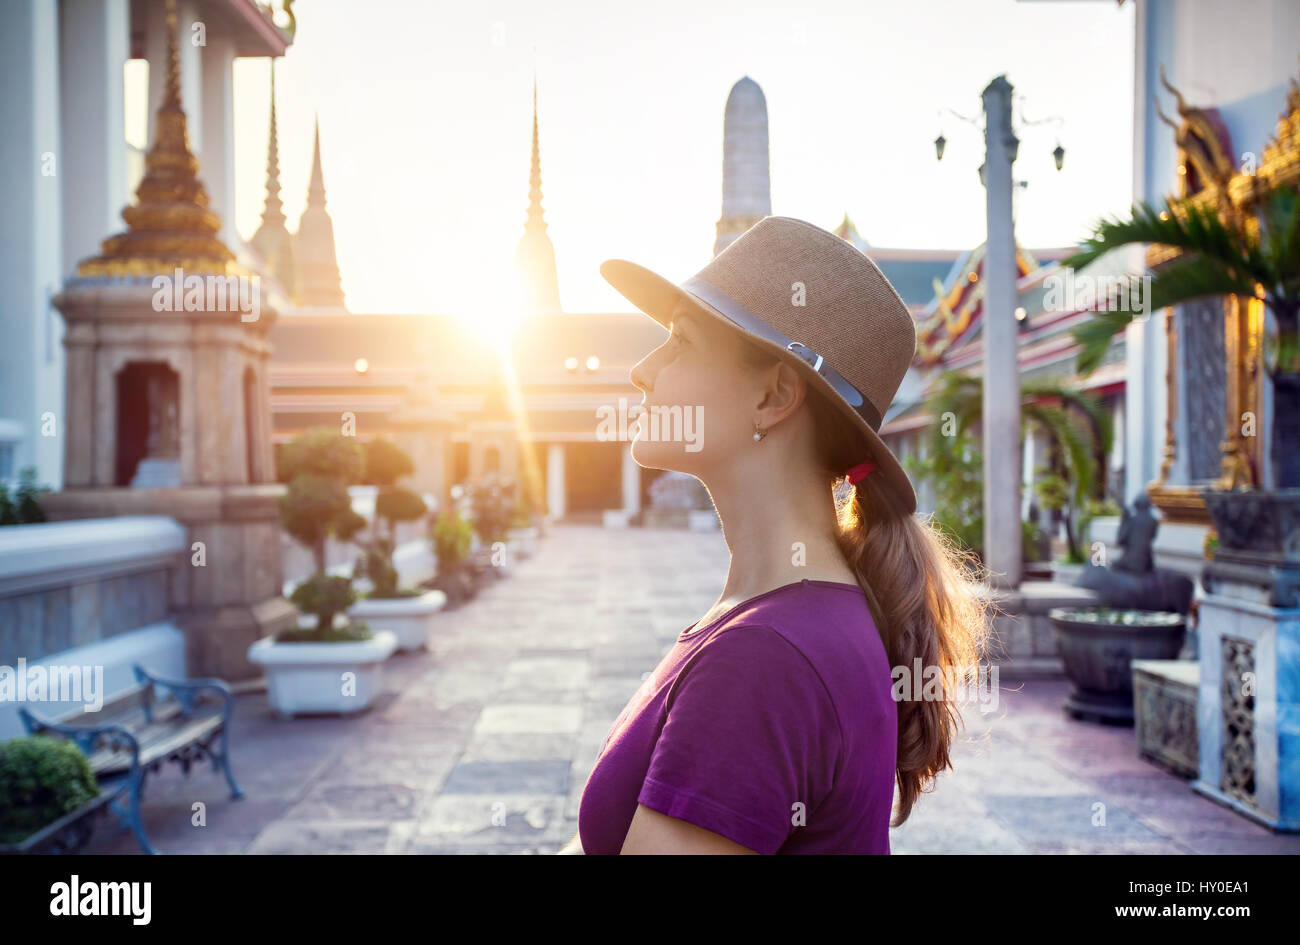 Beautiful tourist woman in the hat and purple t-shirt in Wat Pho temple at sunset in Bangkok, Thailand. - Stock Image